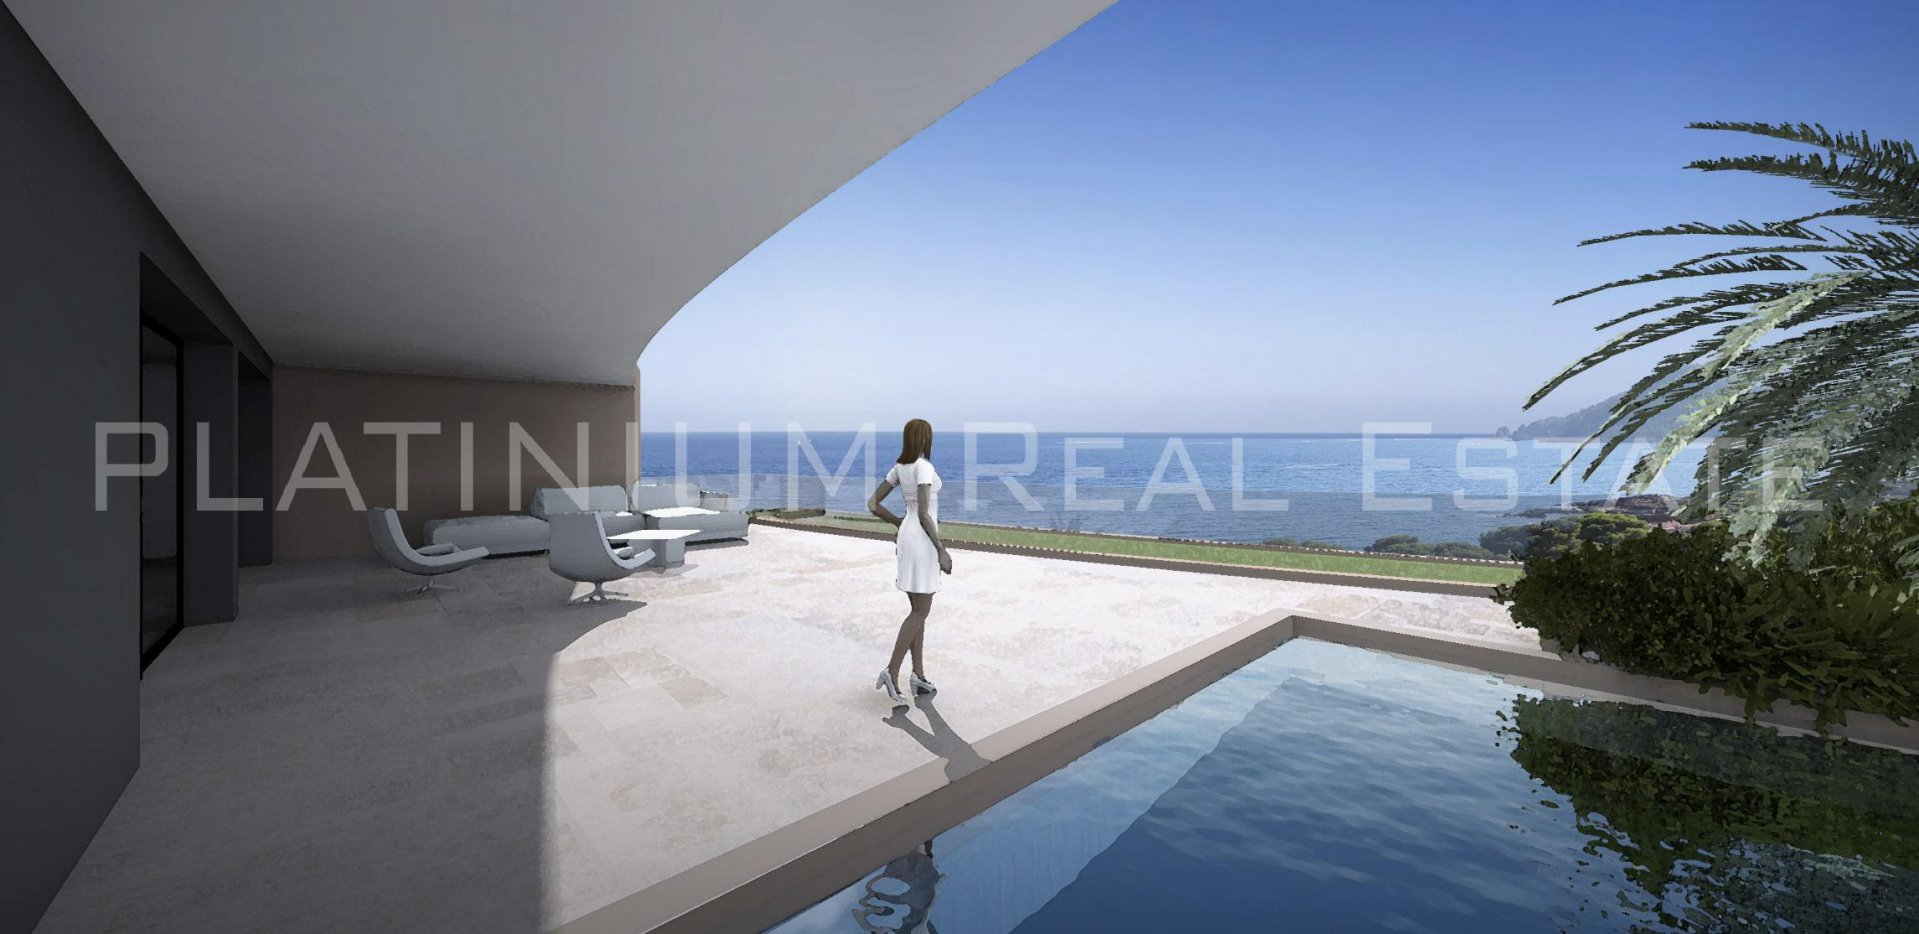 SAINT RAPHAEL Appartement 200m2 Vue Panoramique mer 3 chambres 85m2 Terrasse Piscine privative